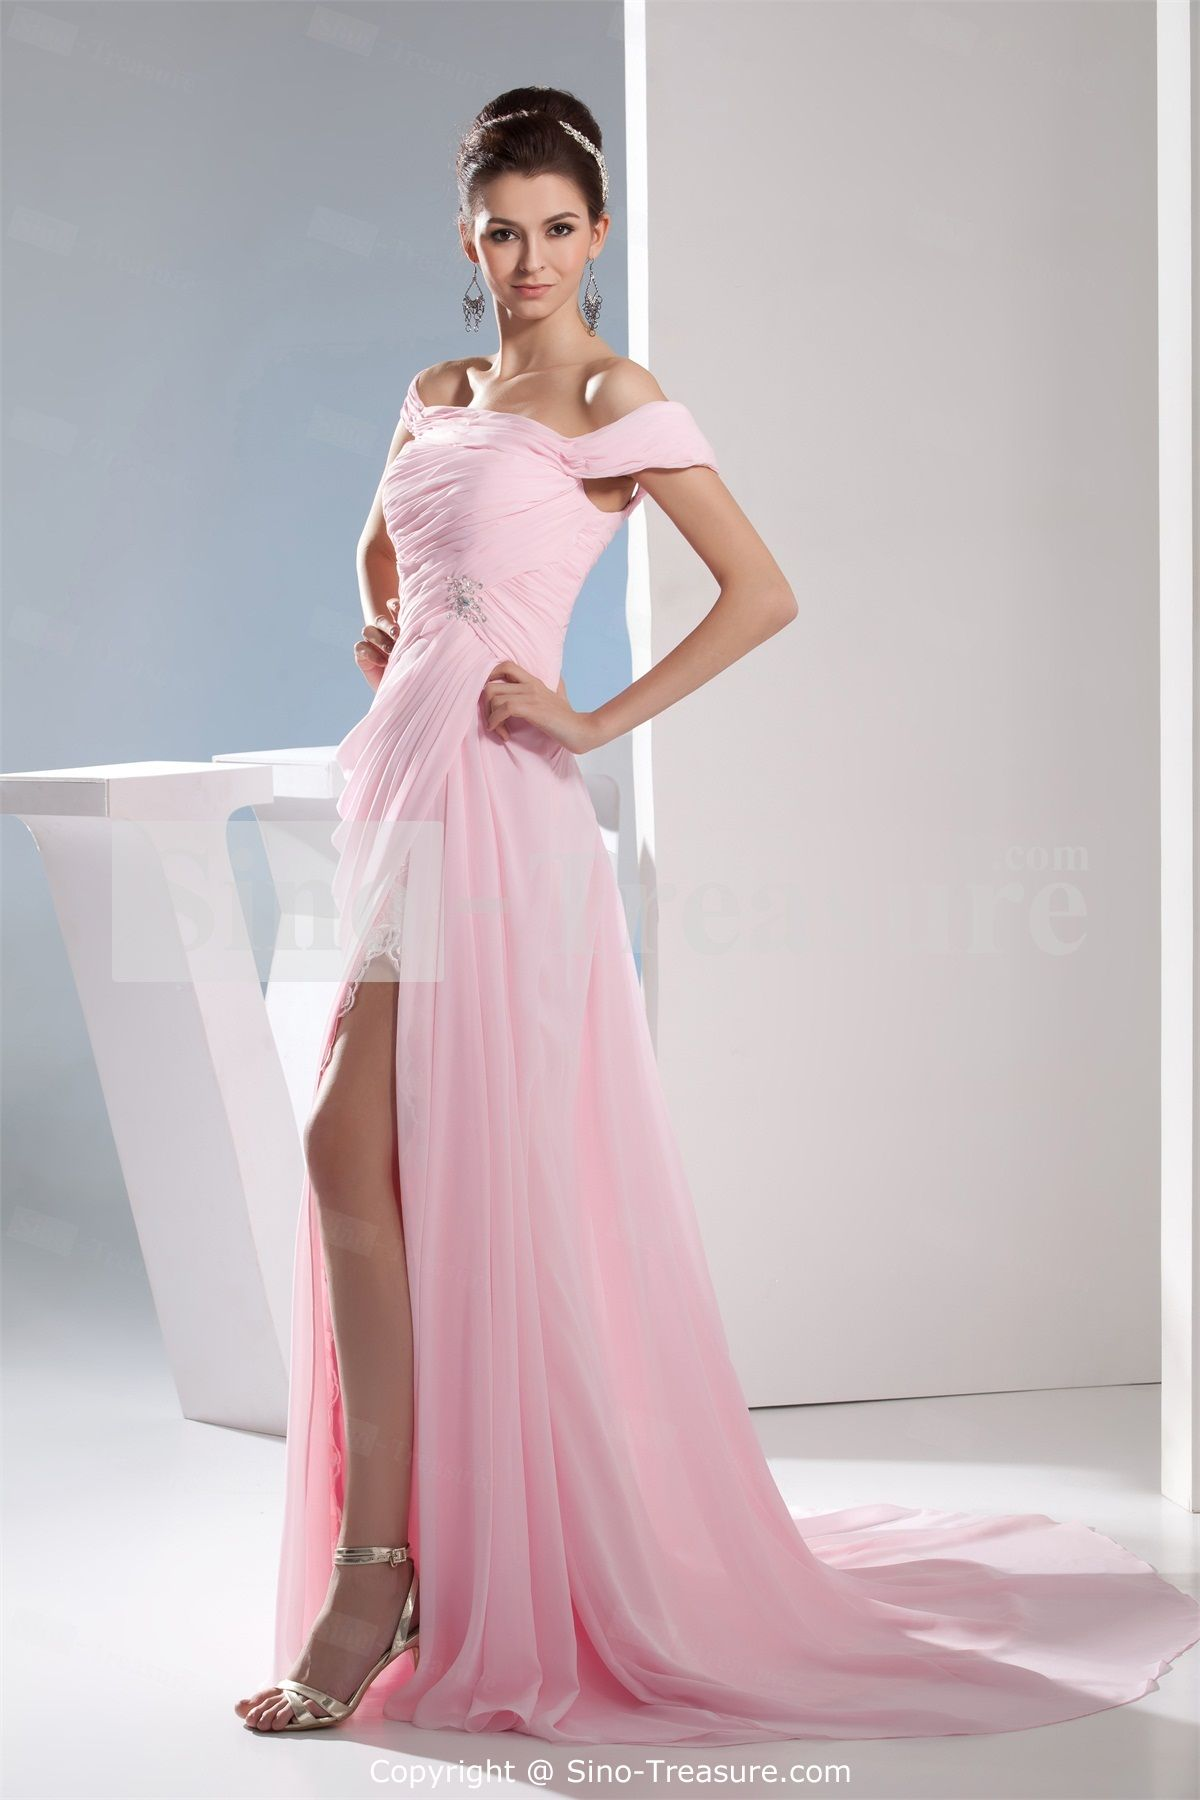 Soft Pink Prom Dress - Ocodea.com